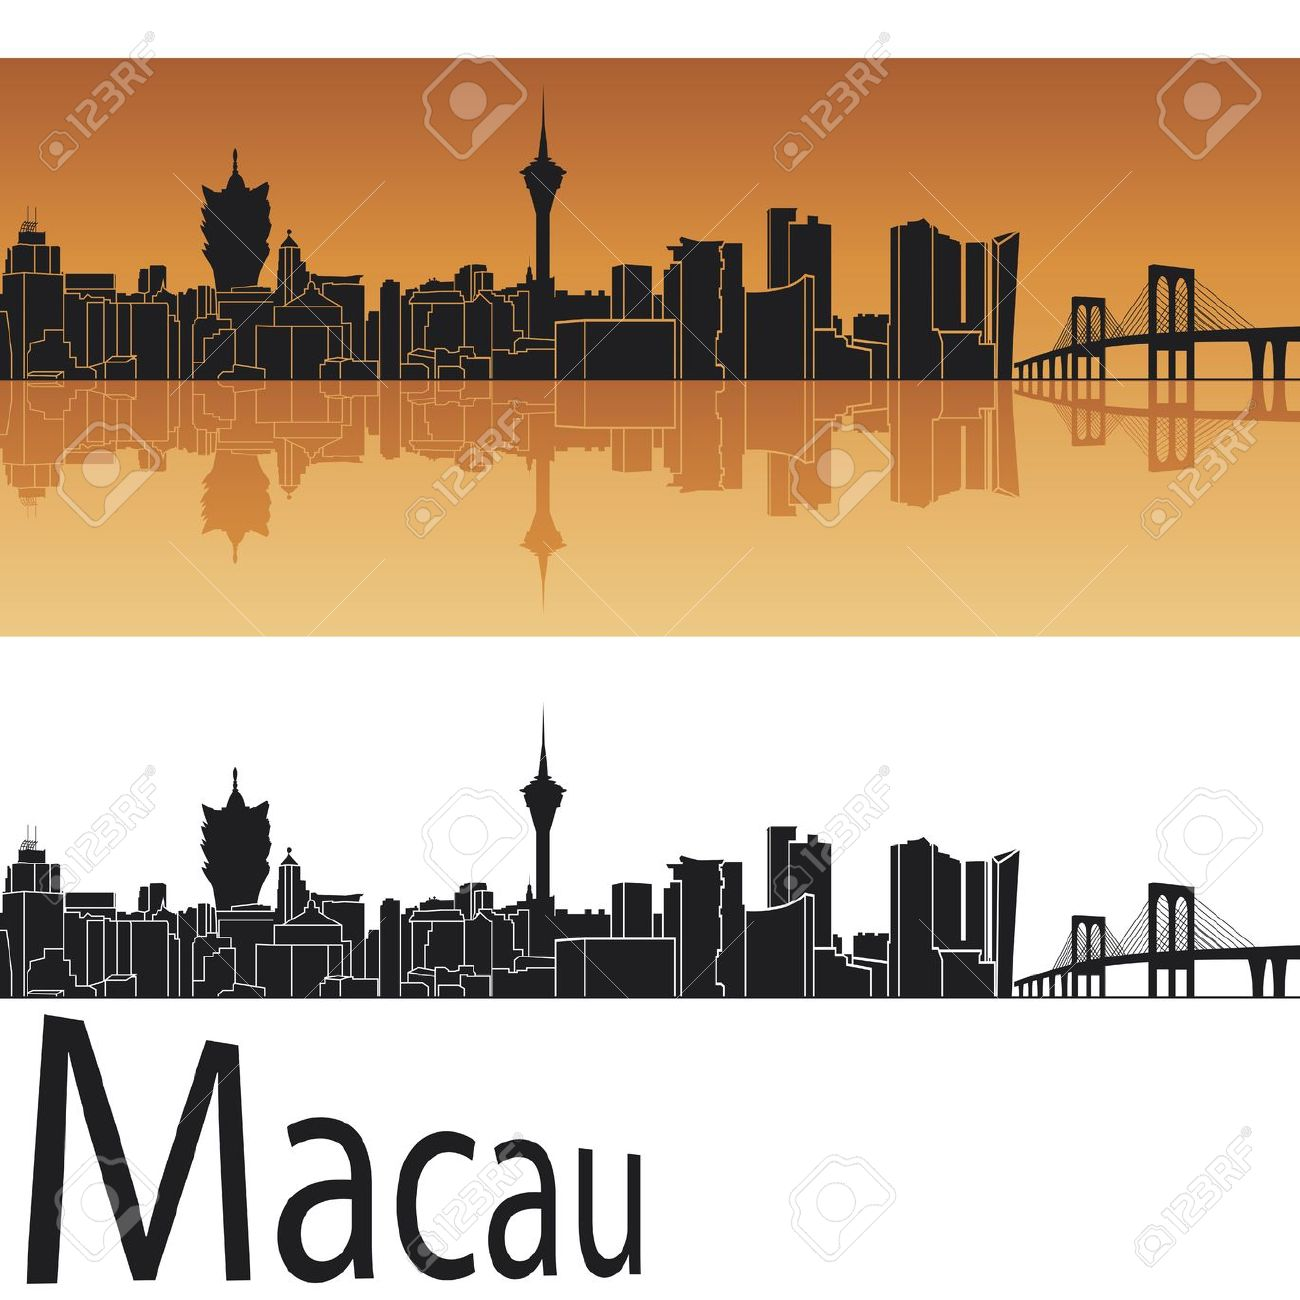 898 Macau Stock Vector Illustration And Royalty Free Macau Clipart.